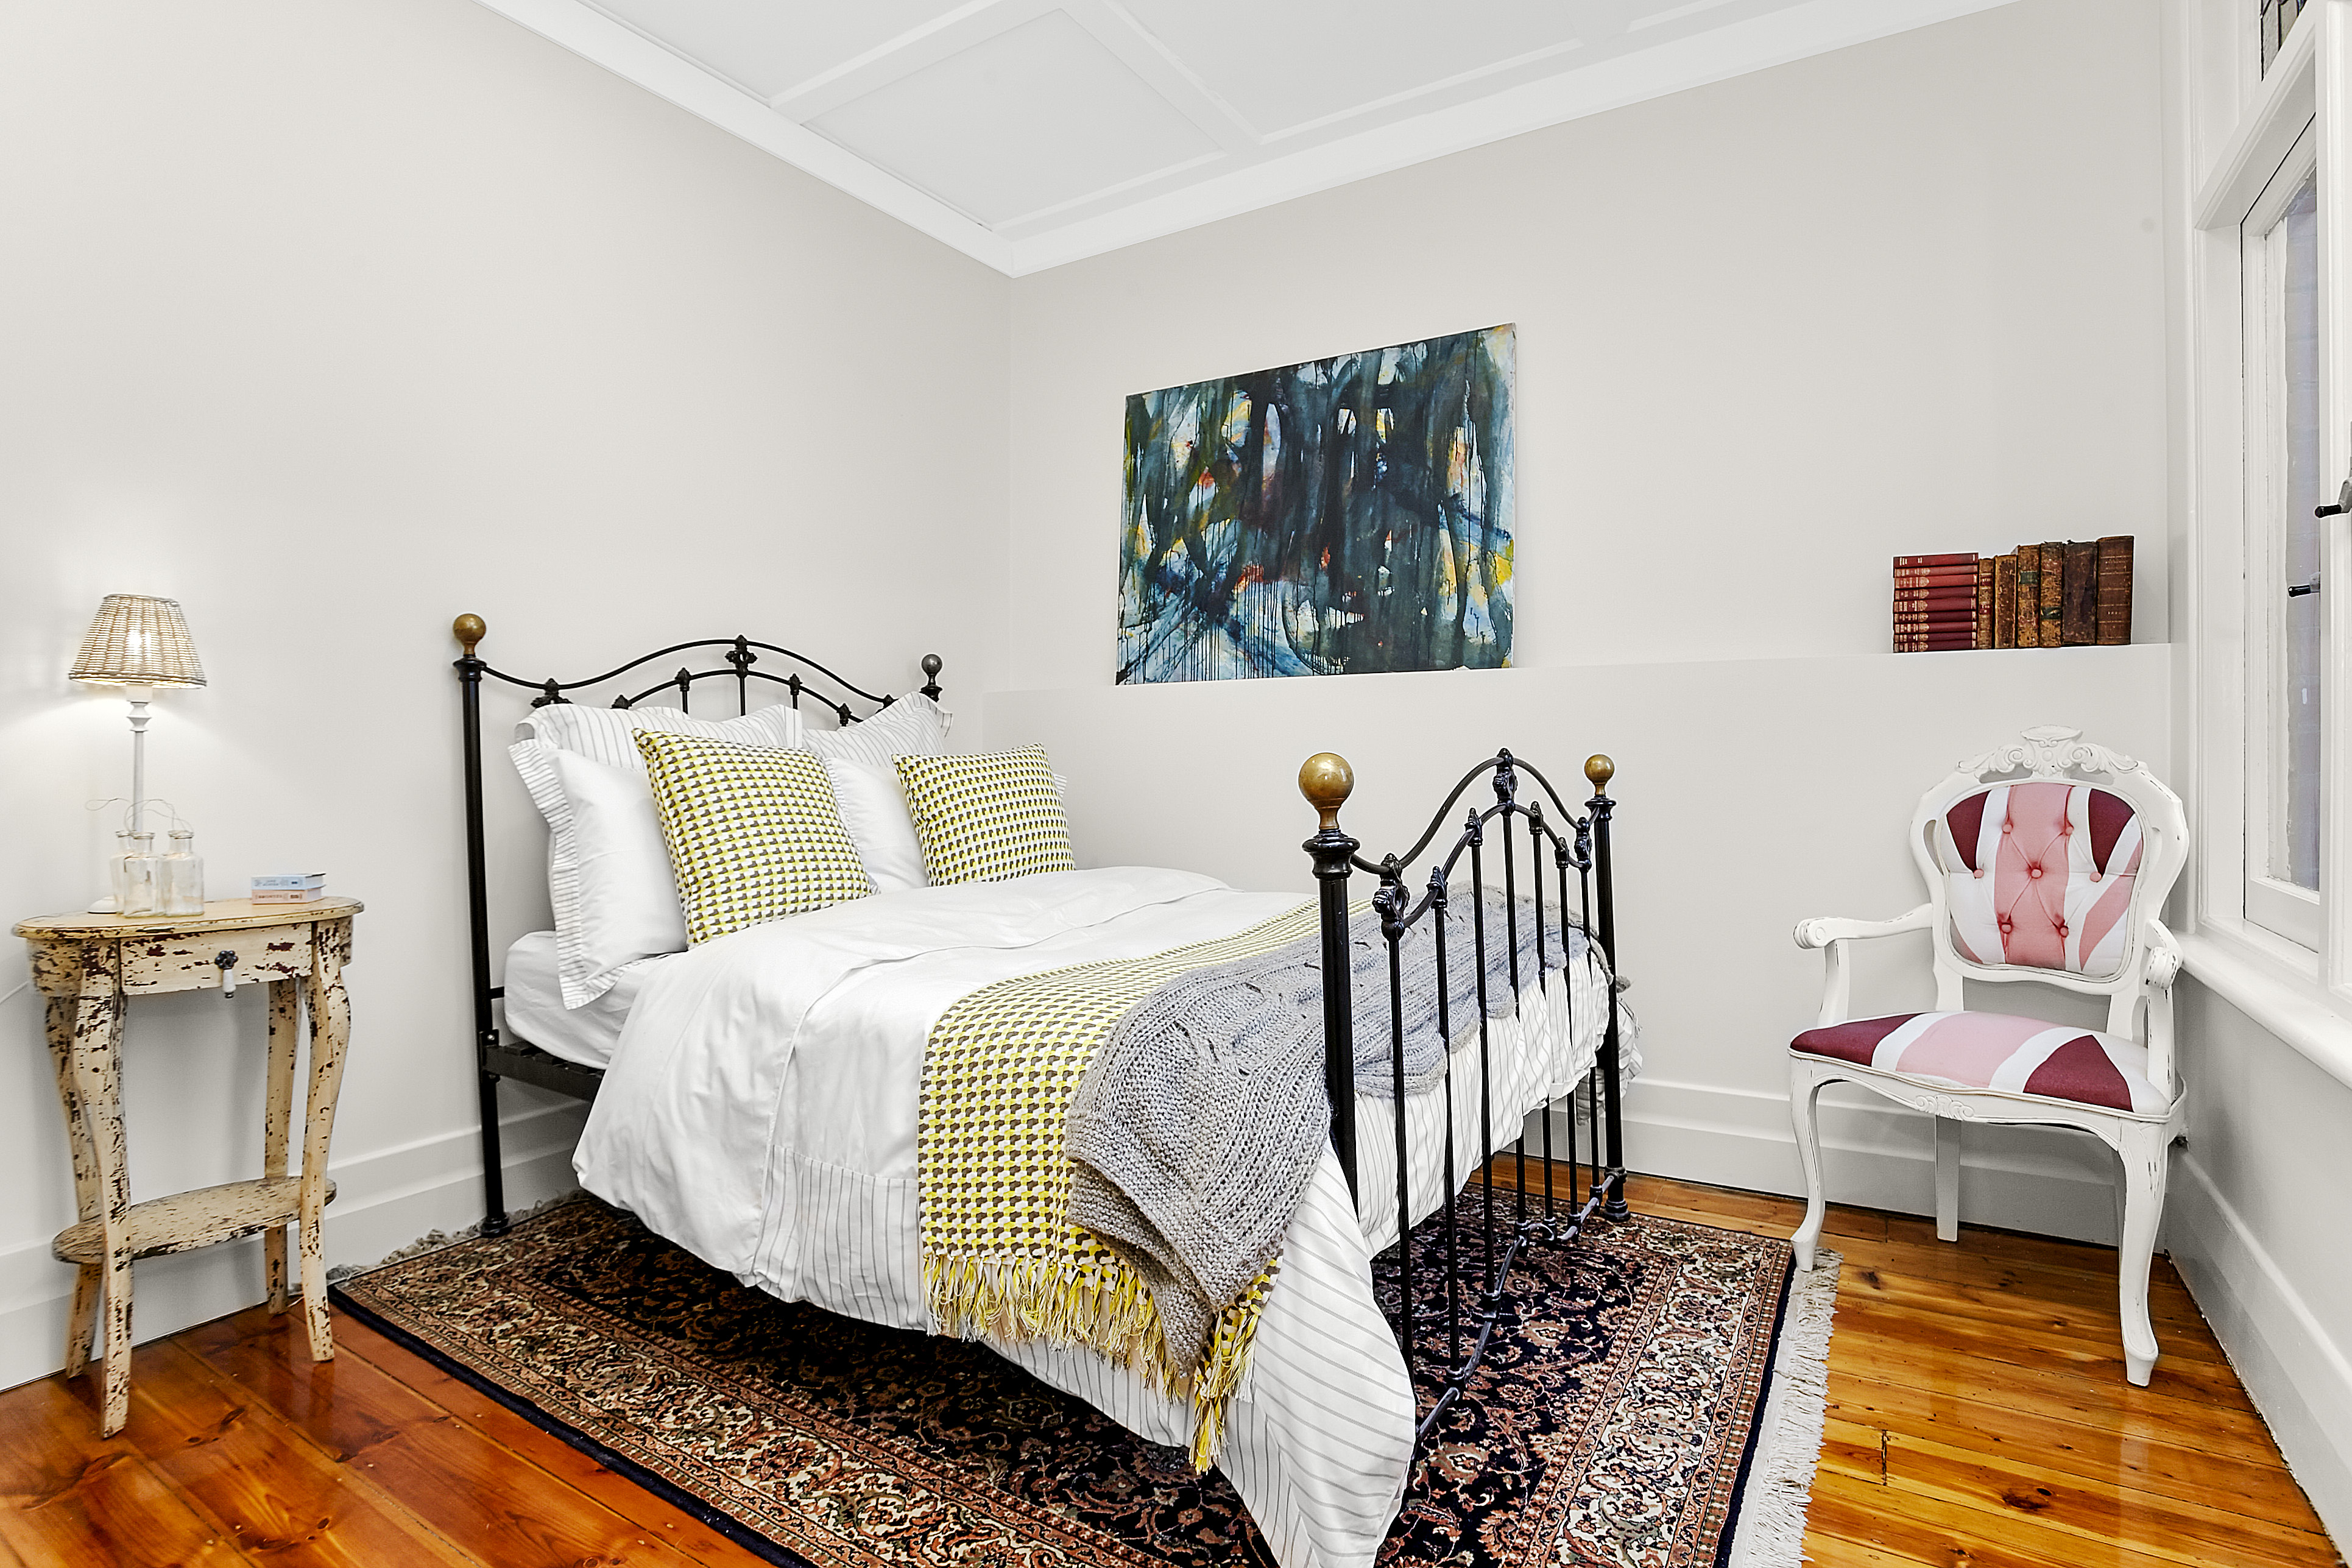 11-243-beaconsfield-parade-middle-park-student-accommodation-Melbourne-Bedroom3-Unilodgers